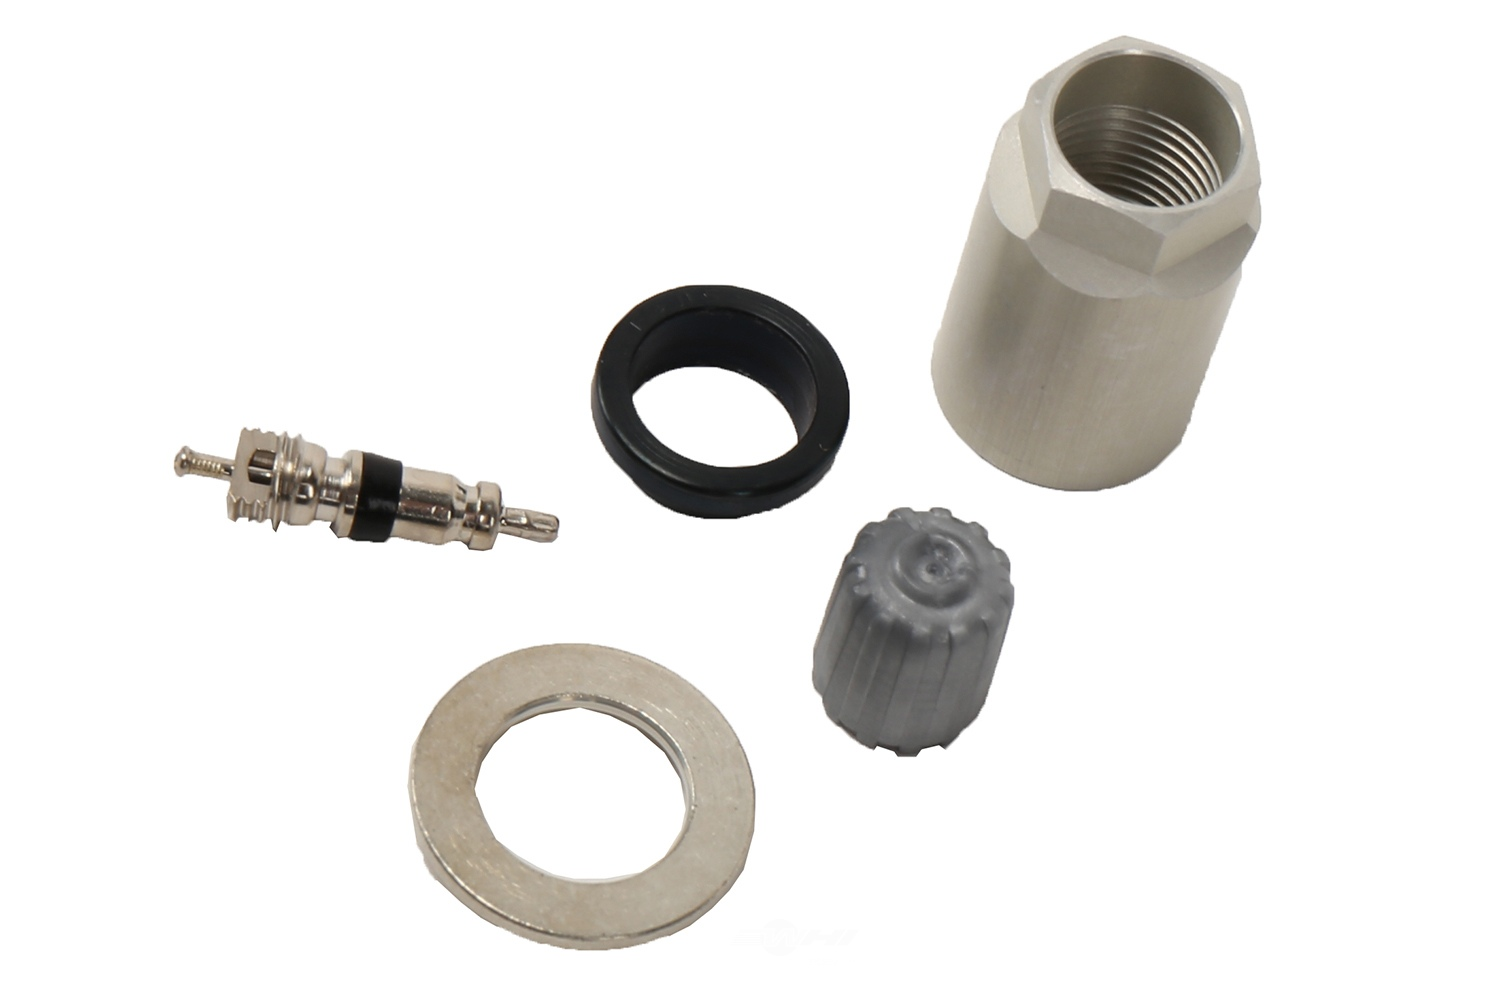 ACDELCO GM ORIGINAL EQUIPMENT - Tire Pressure Monitoring System Valve Kit - DCB 19117464